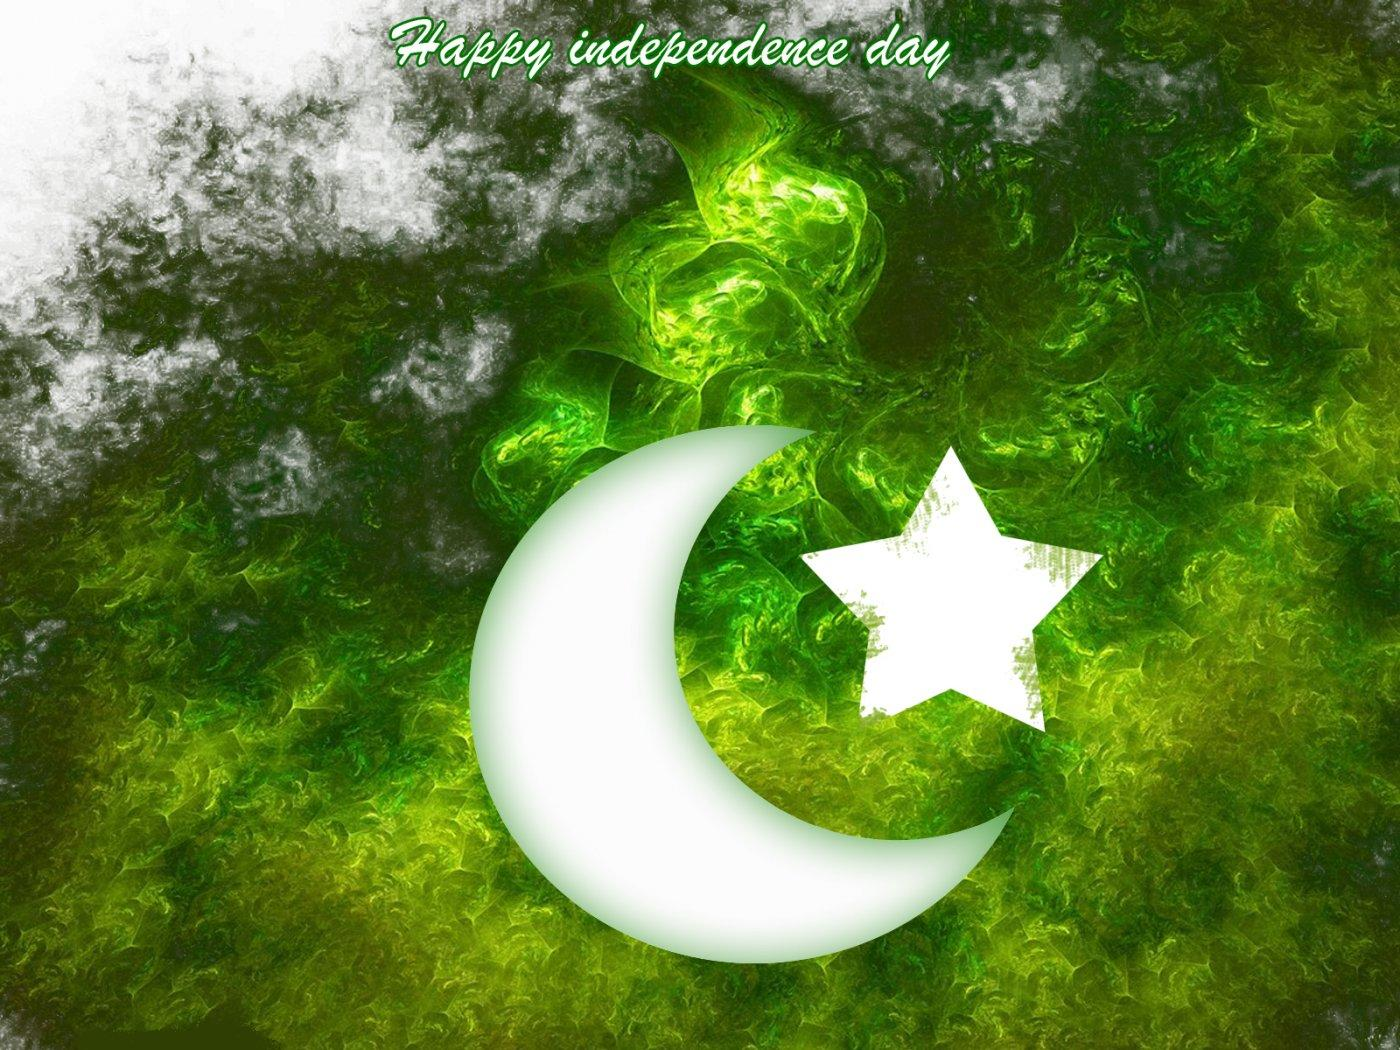 pakistan independence day painting art wallpapers car